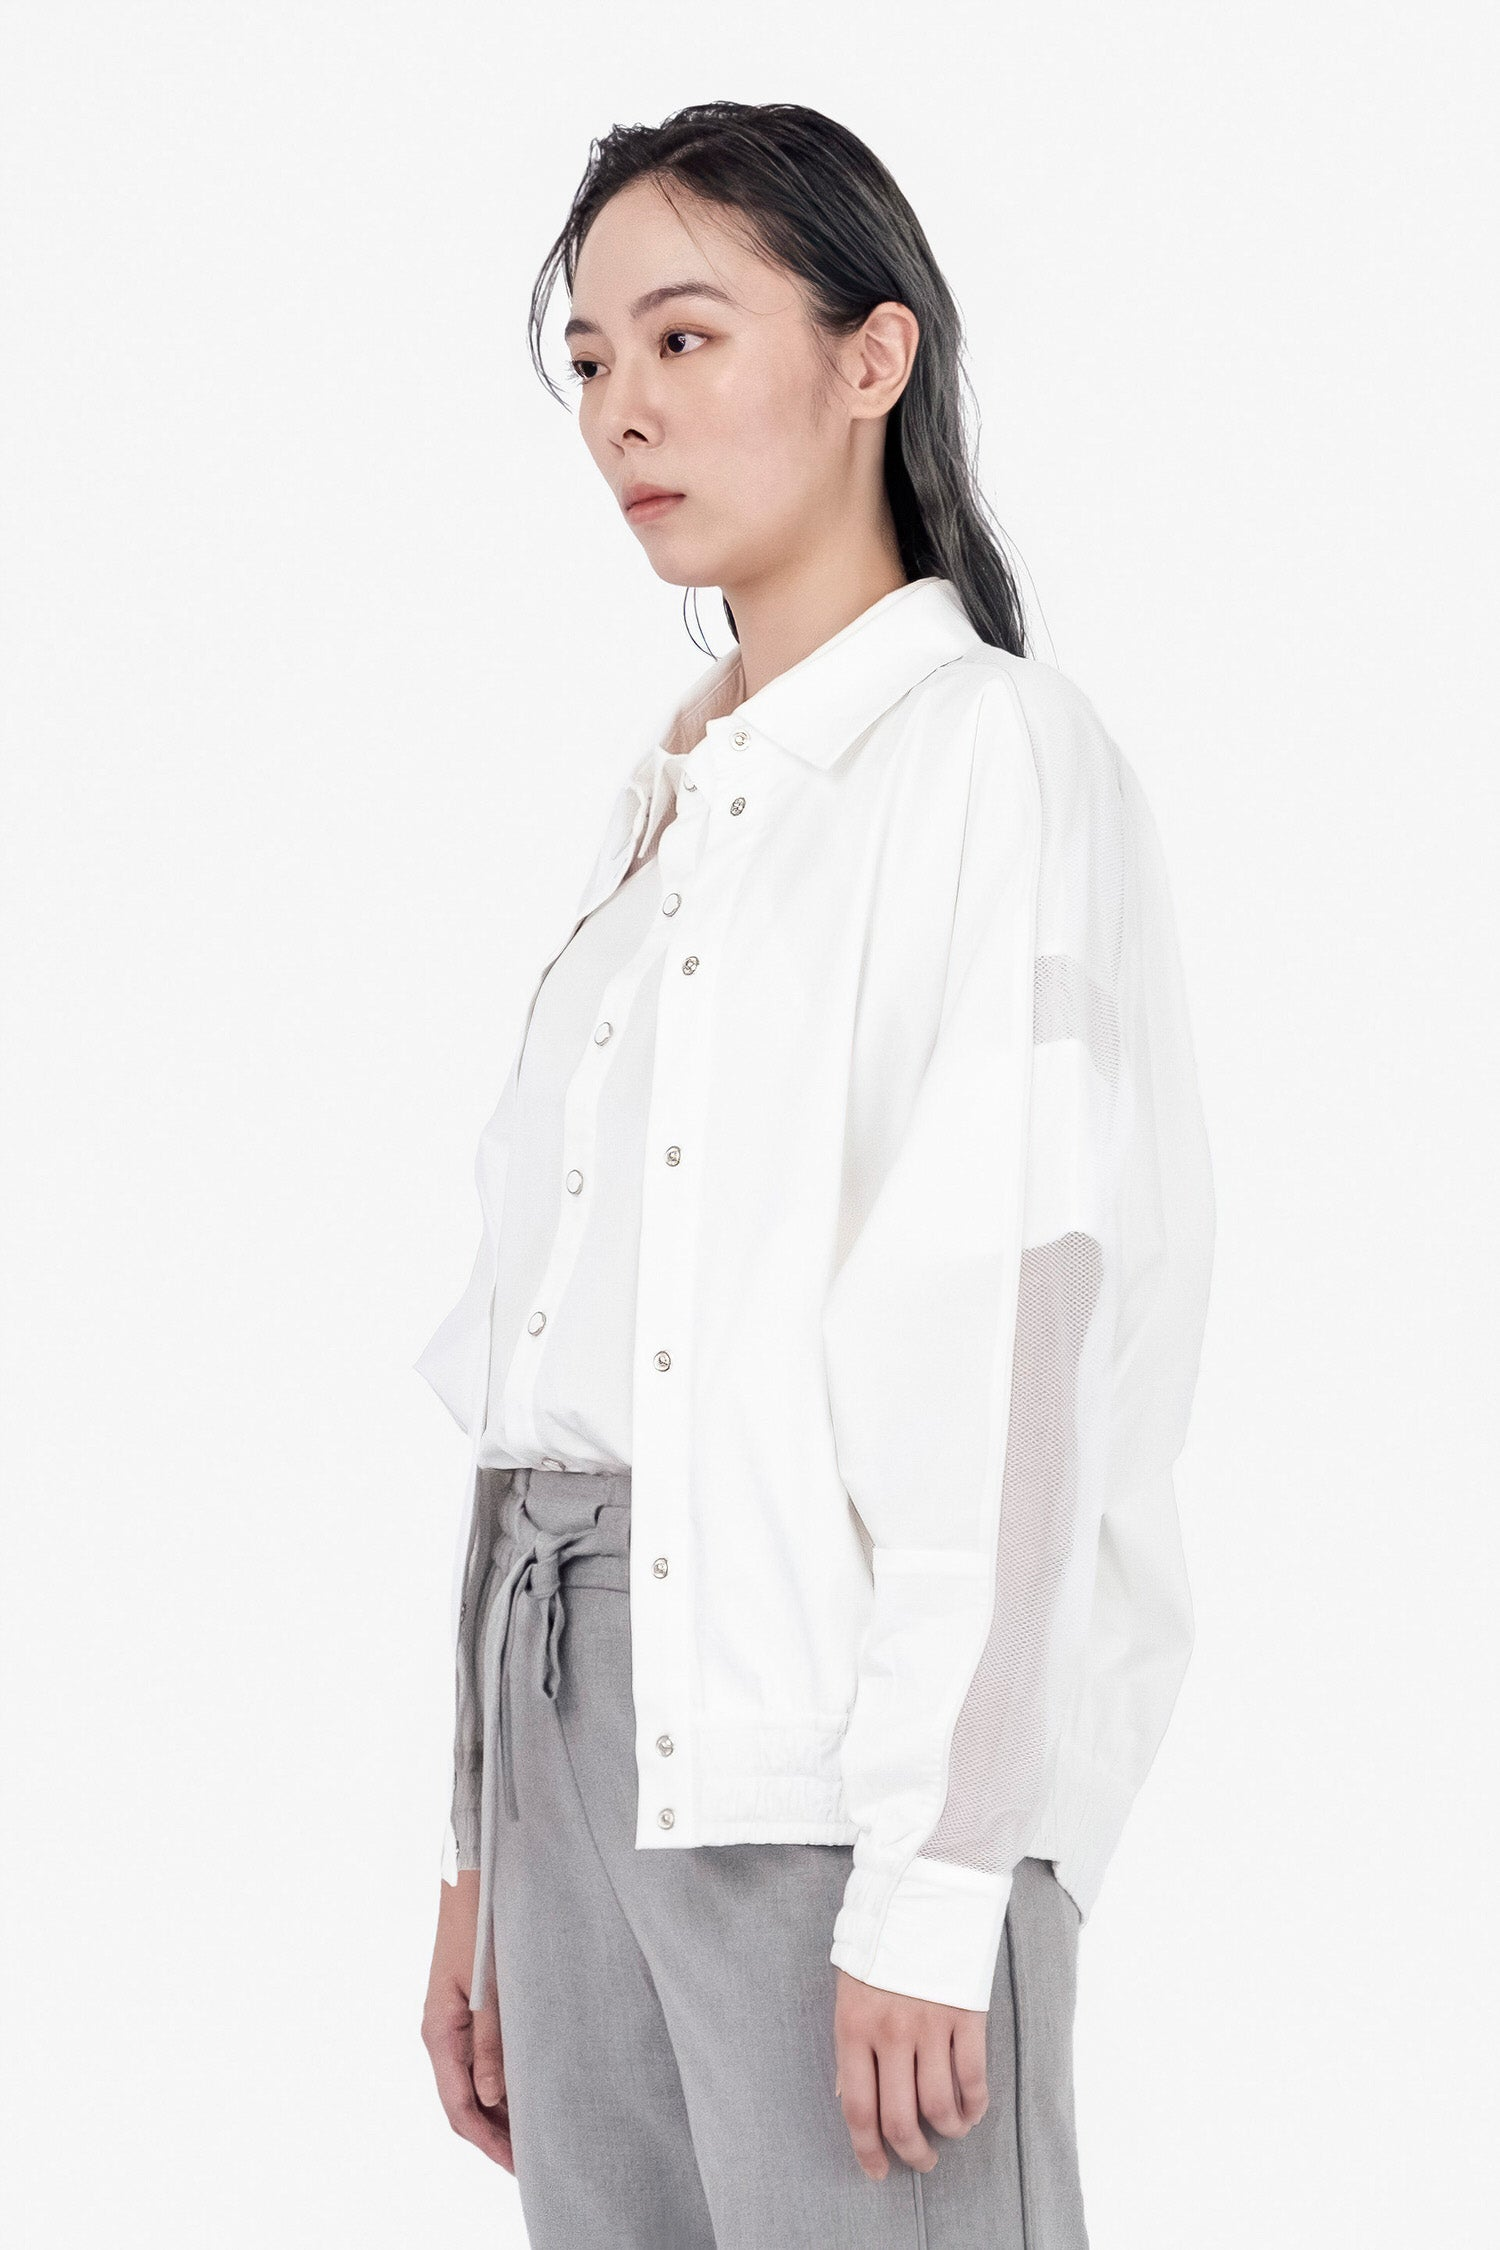 SEANNUNG - 披風連袖外套 Batwing Sleeve Cape Jacket in White - Woman